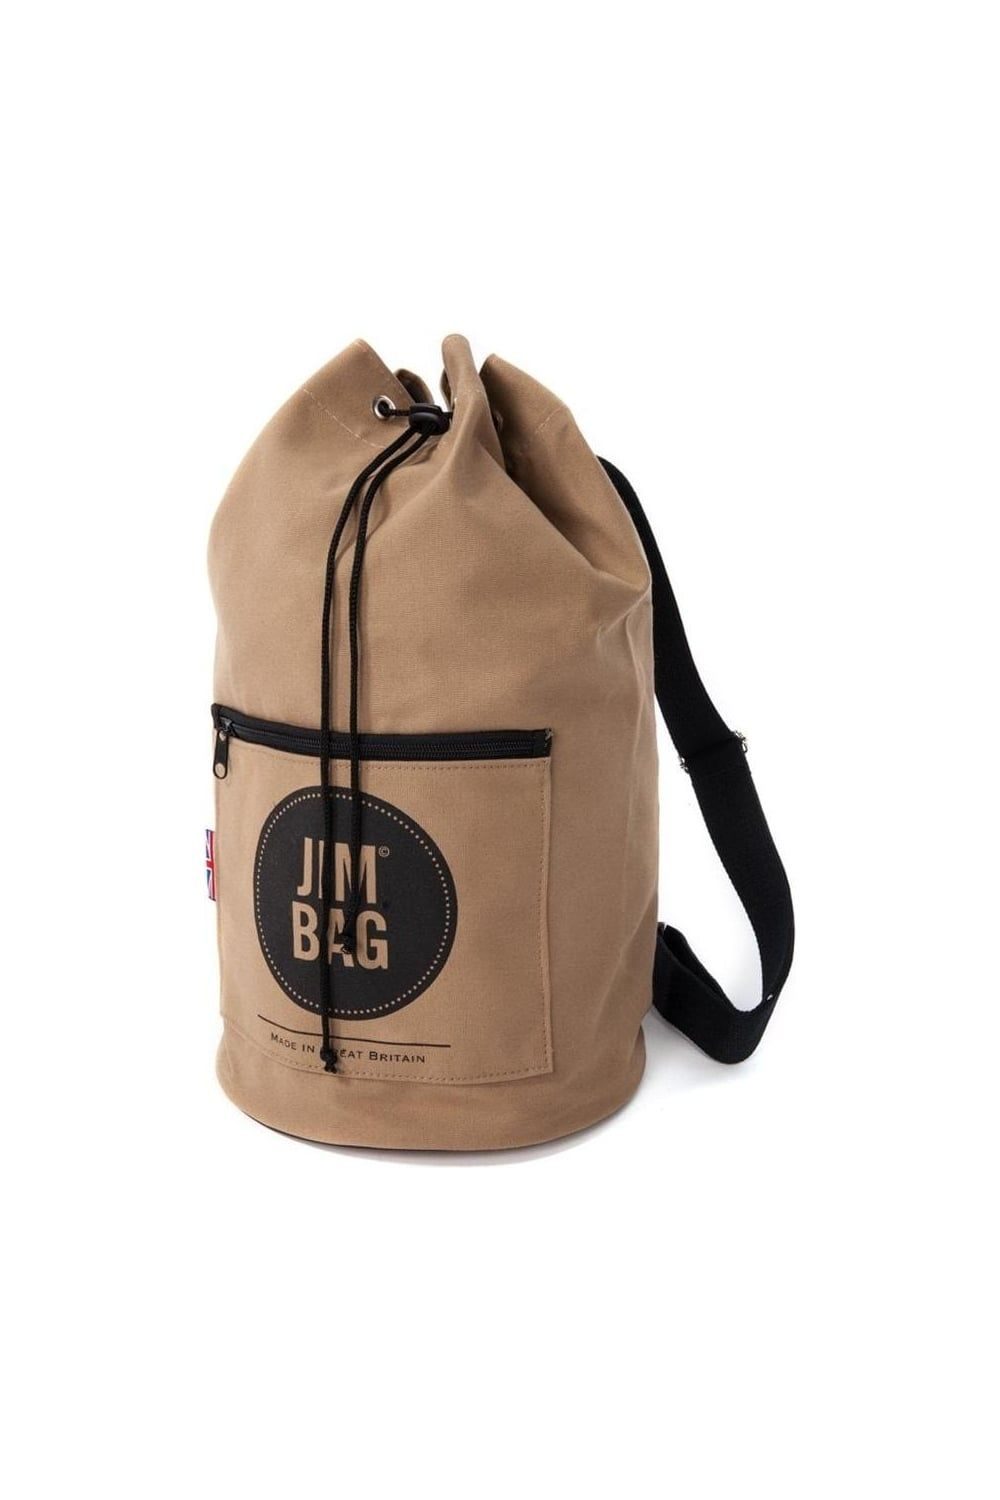 835e4e4dc0 The Jim Bag One Strap Duffle Bag in Beige Features Drawstring closure Zip  pocket on front Jim Bag logo print on front One strap Adjustable strap